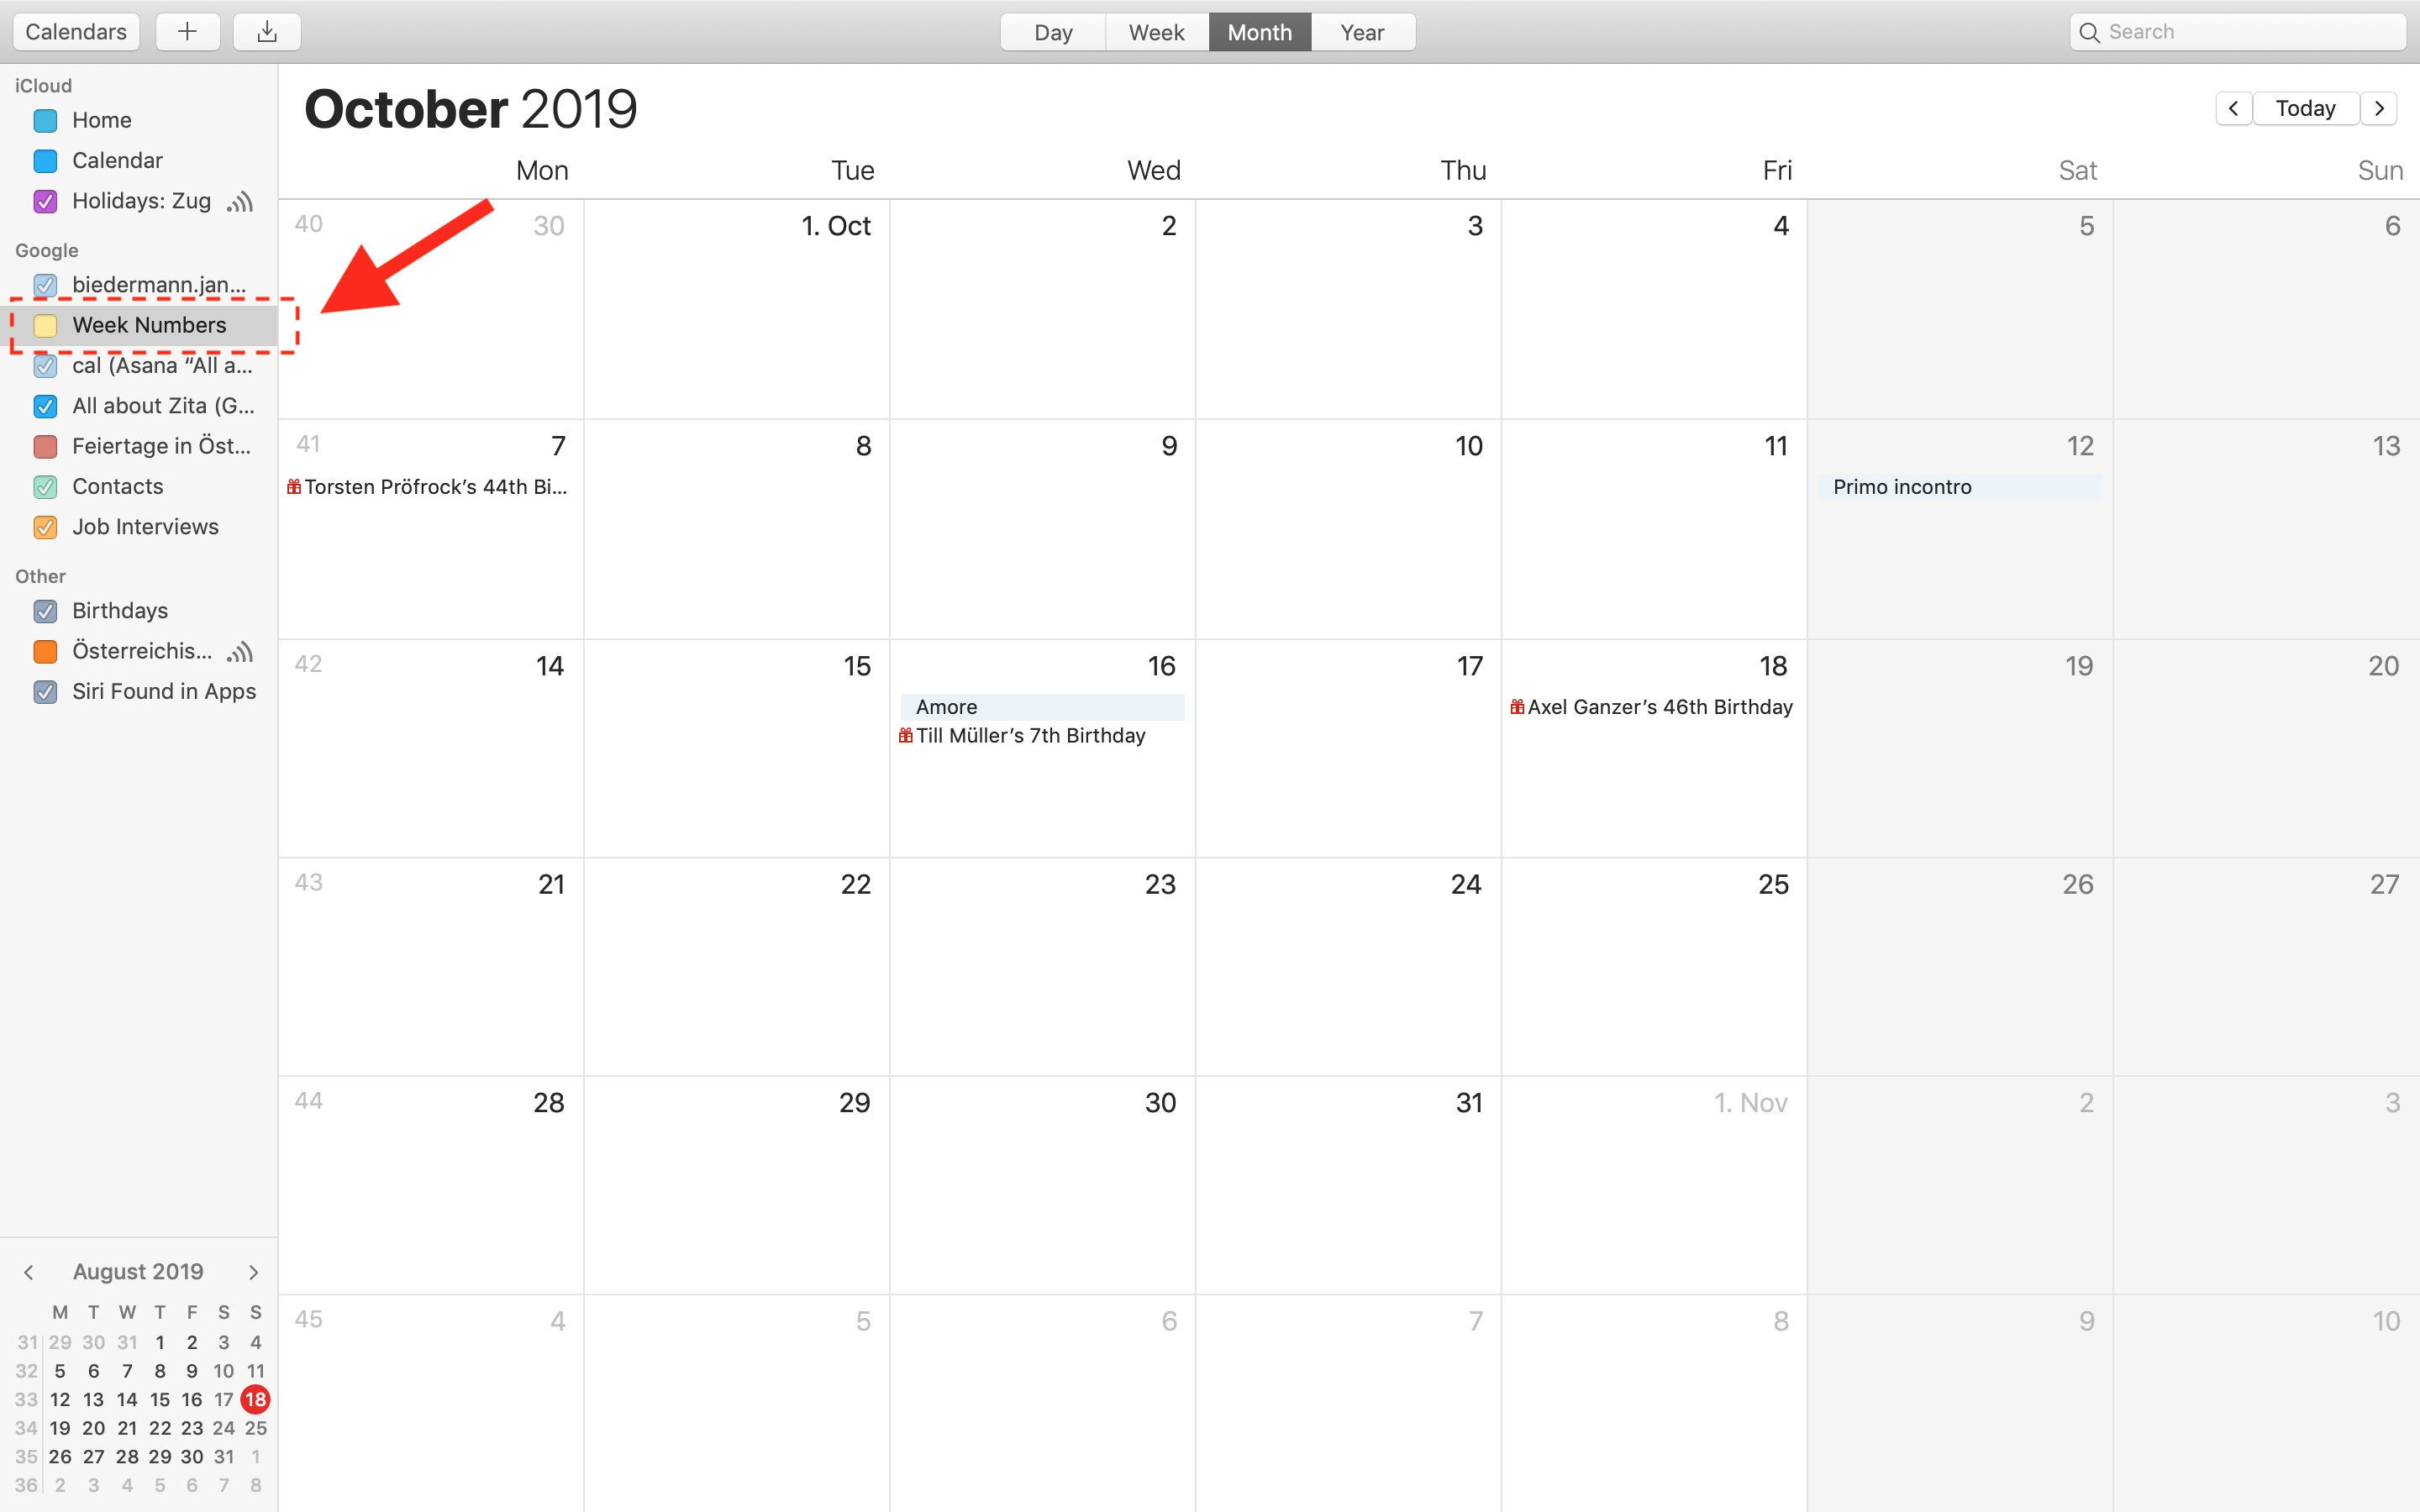 How Can I Remove/delete A Shared Calendar That Is Not